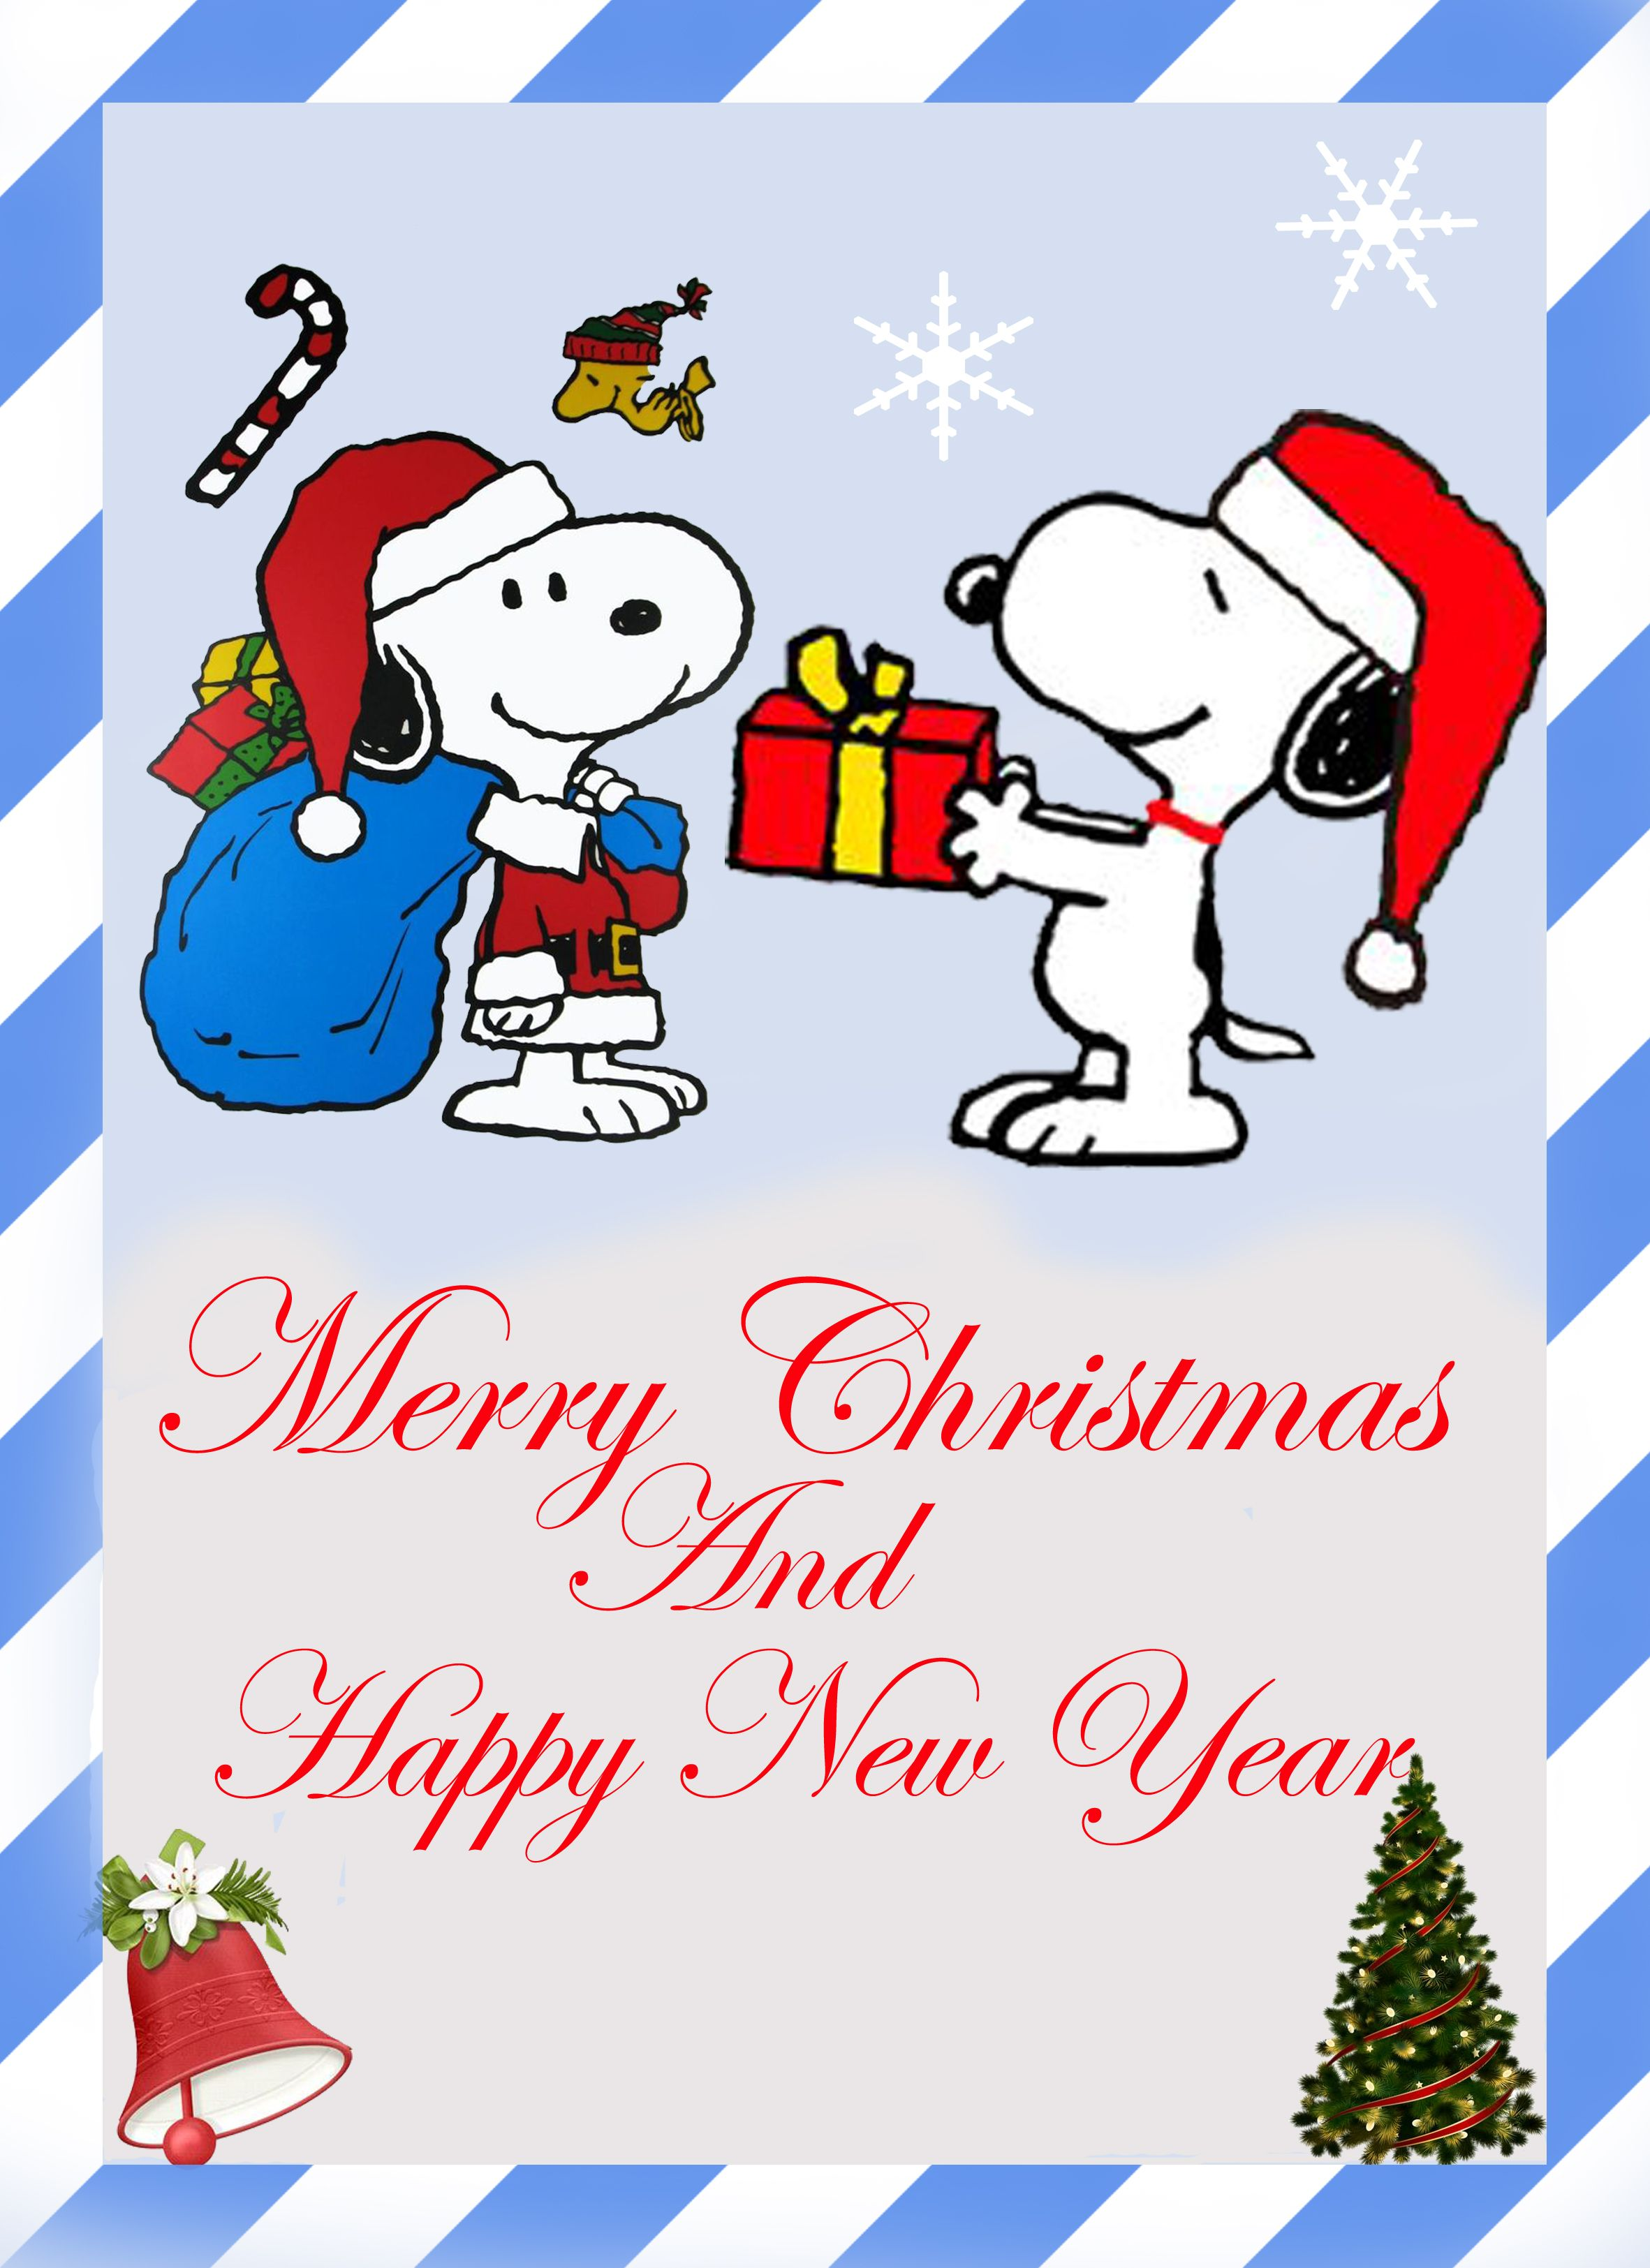 Merry Christmas And Happy New Year Snoopy Christmas Peanuts Christmas Snoopy Love